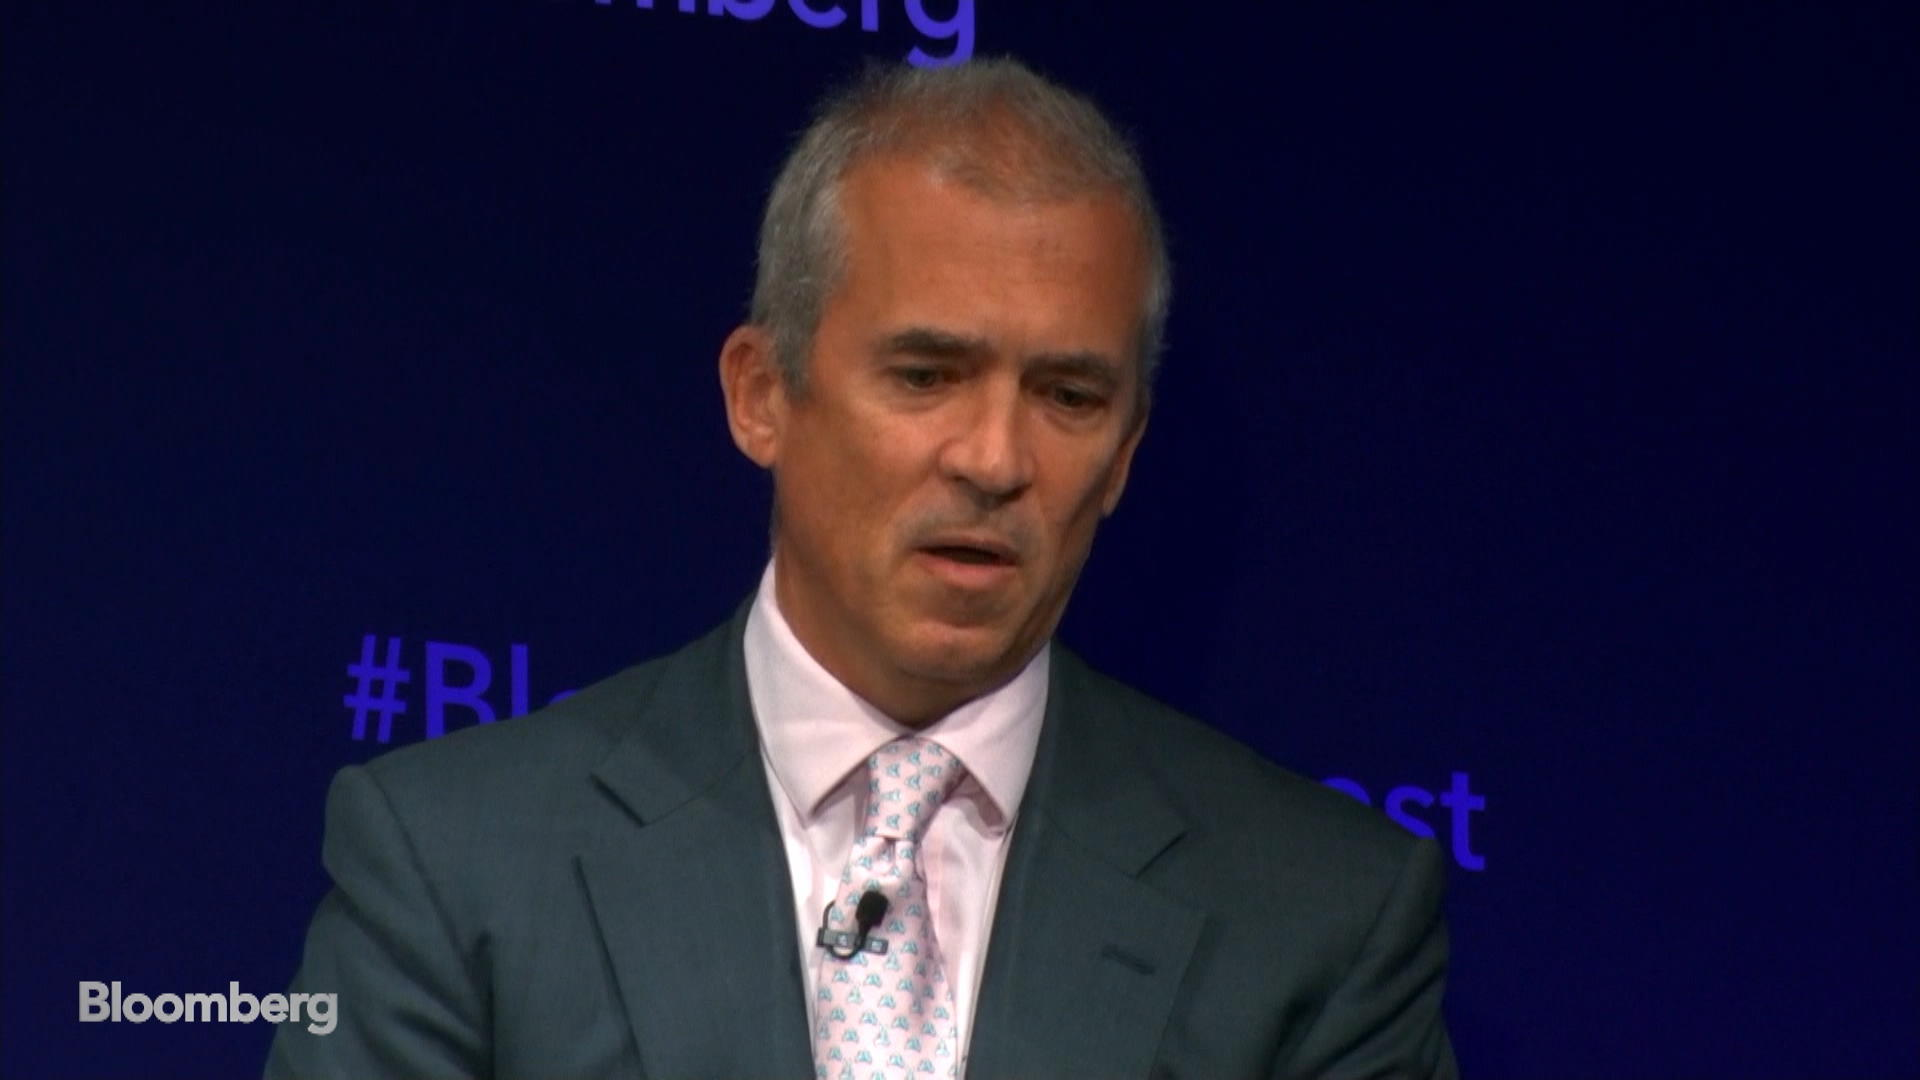 Hard Brexit Would Have Significant Impact on U.K., Europe Economies: AllianzGI CEO Andreas Utermann